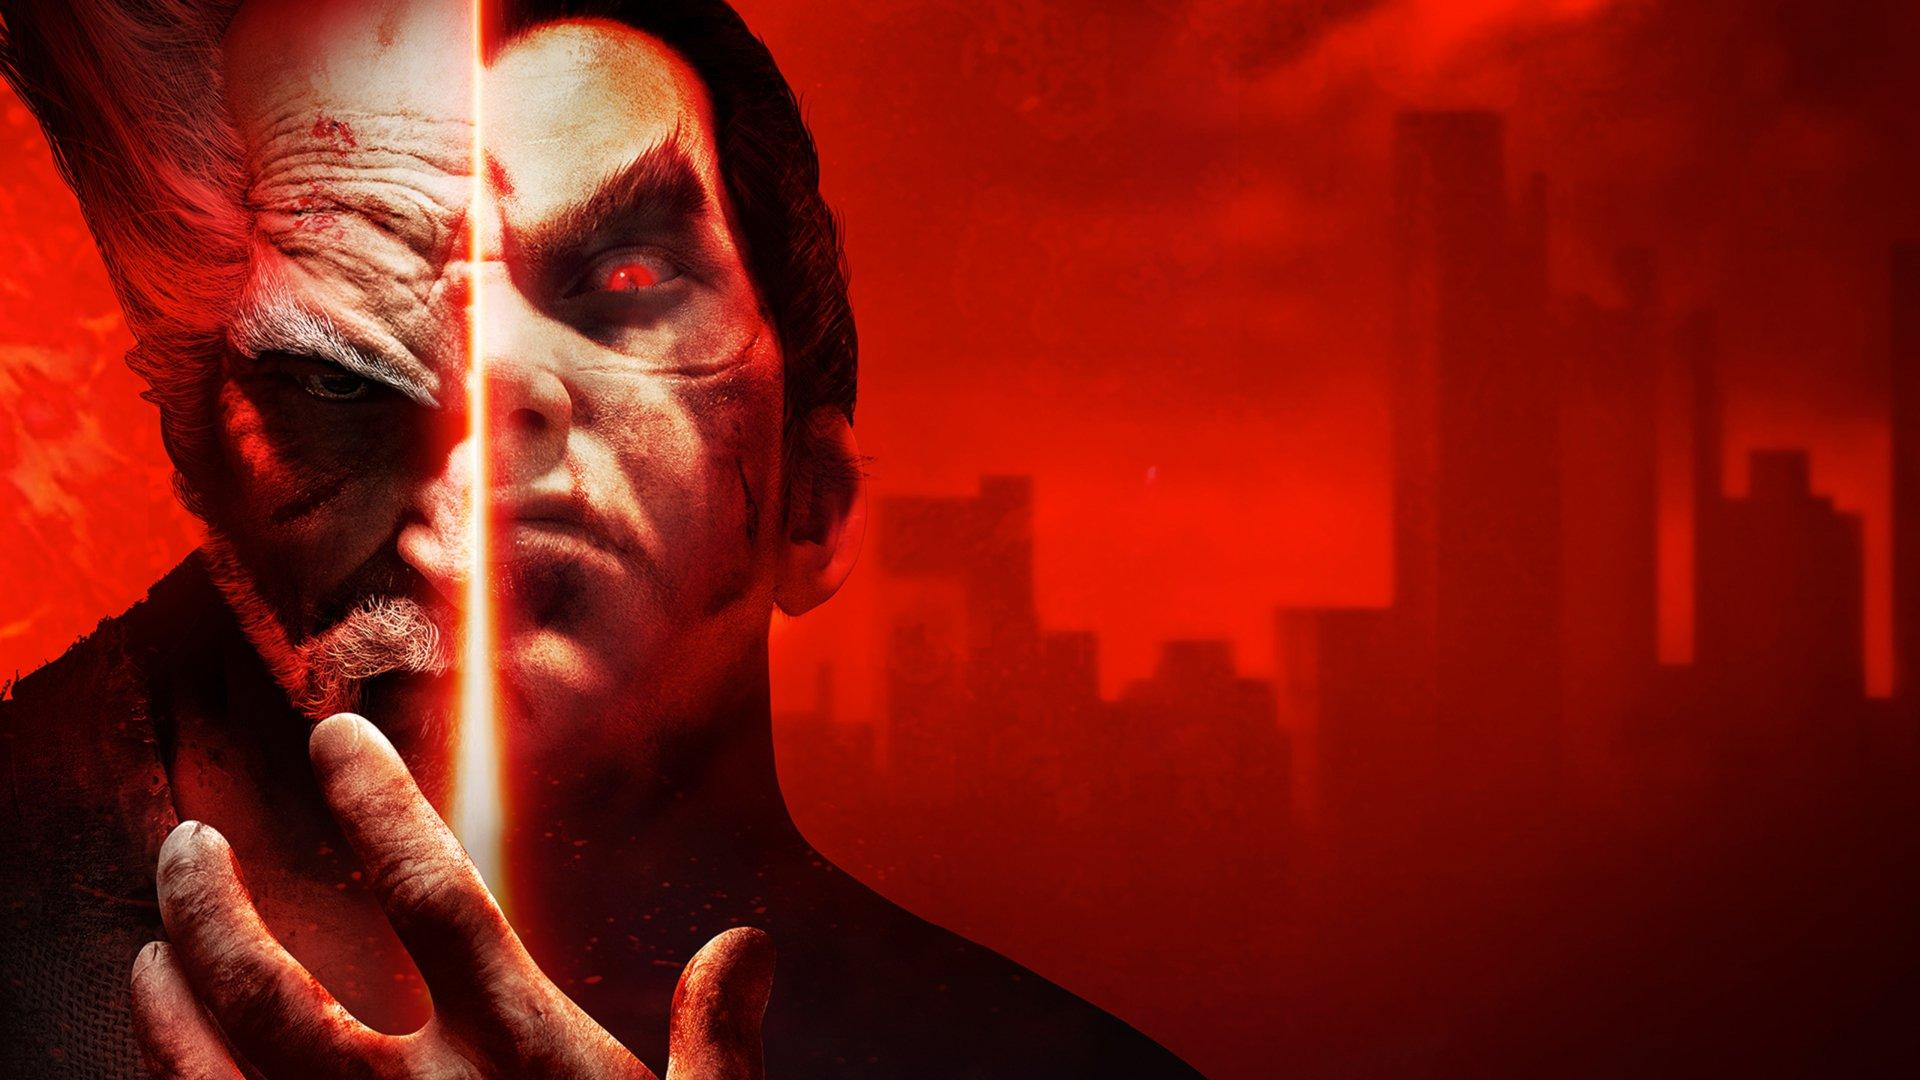 5 Kazuya Mishima HD Wallpapers | Background Images - Wallpaper Abyss